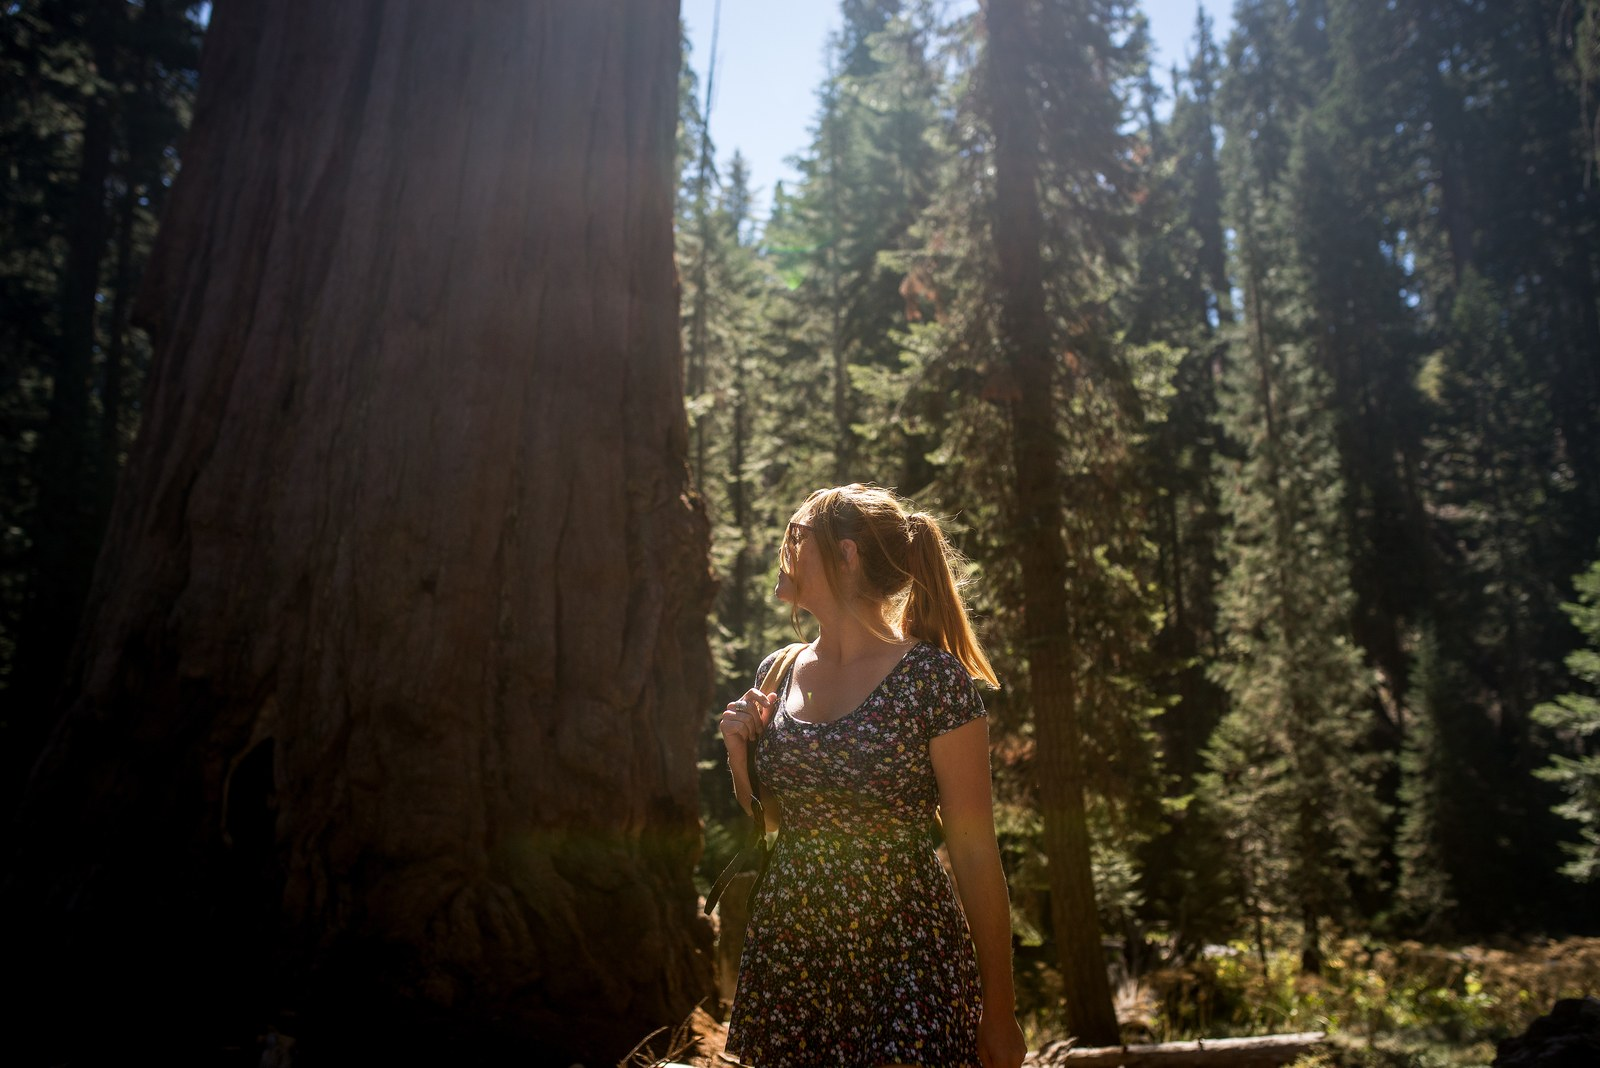 sequoia national park dating Year-round lodging and summer family camp in sequoia & kings canyon national parks.